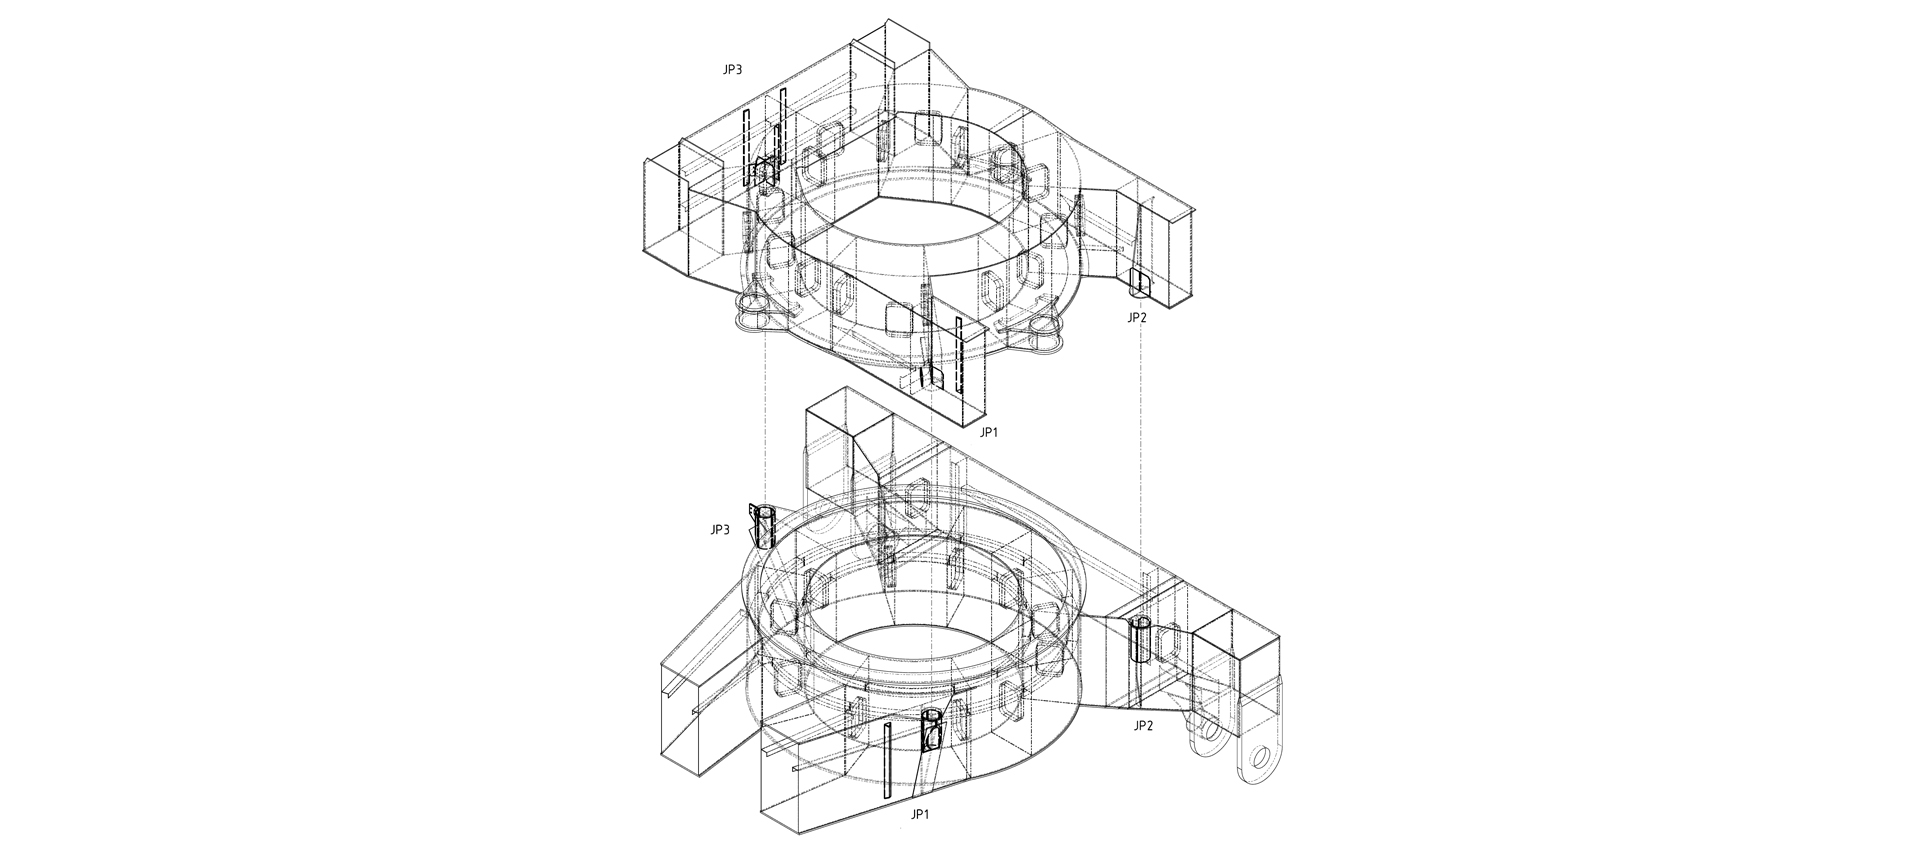 Aspec Engineering Article - Assessment of Slew Bearing Change-Out Jacking Points